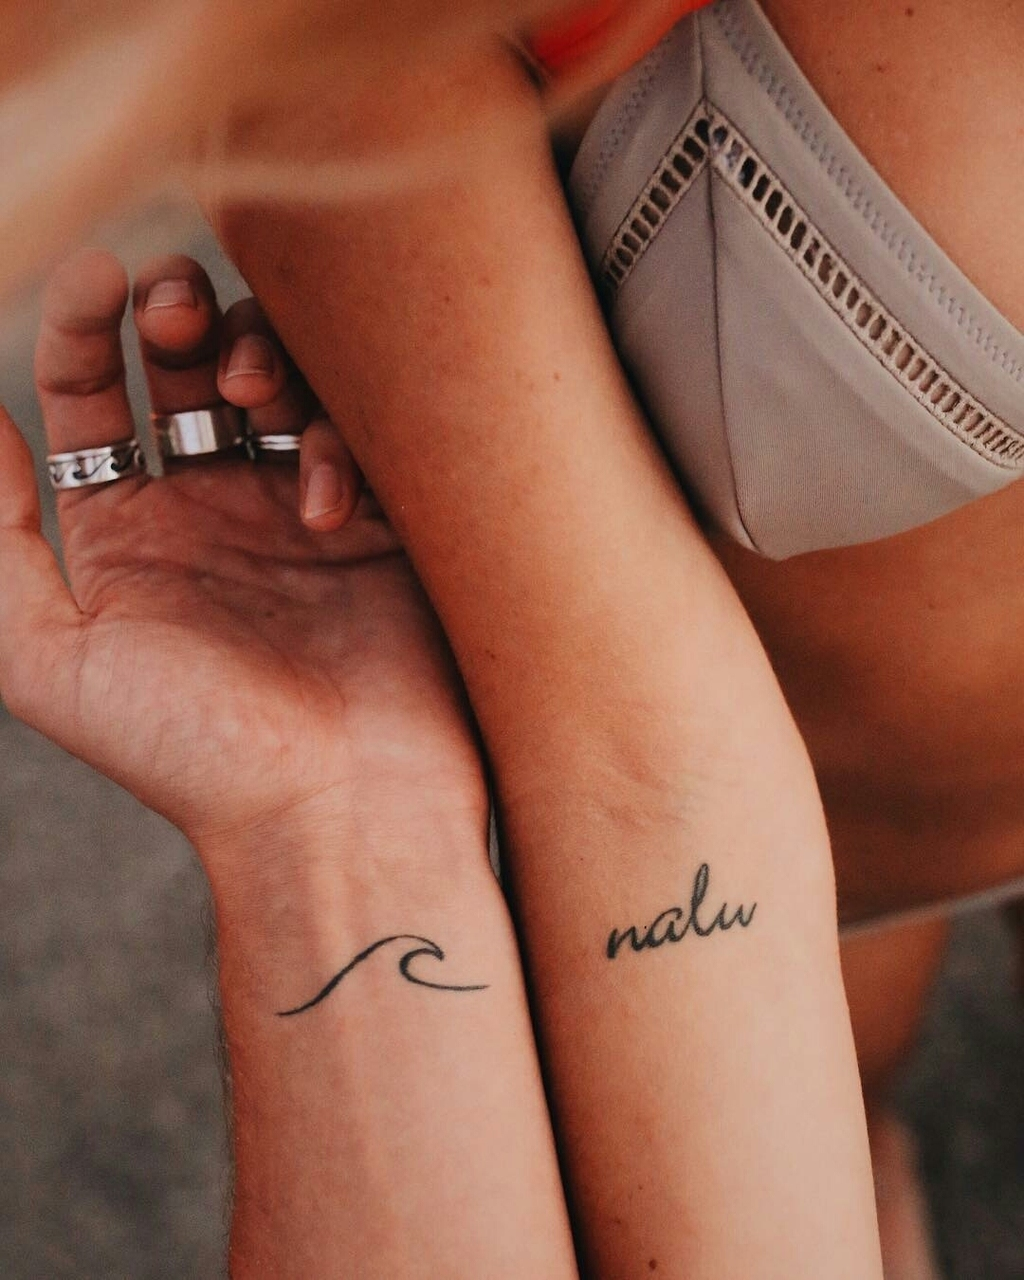 Bite The Tattoo On Your Shoulder : tattoo, shoulder, Image, About, Summer, TATTOO, SHOULDER, Lolaurie